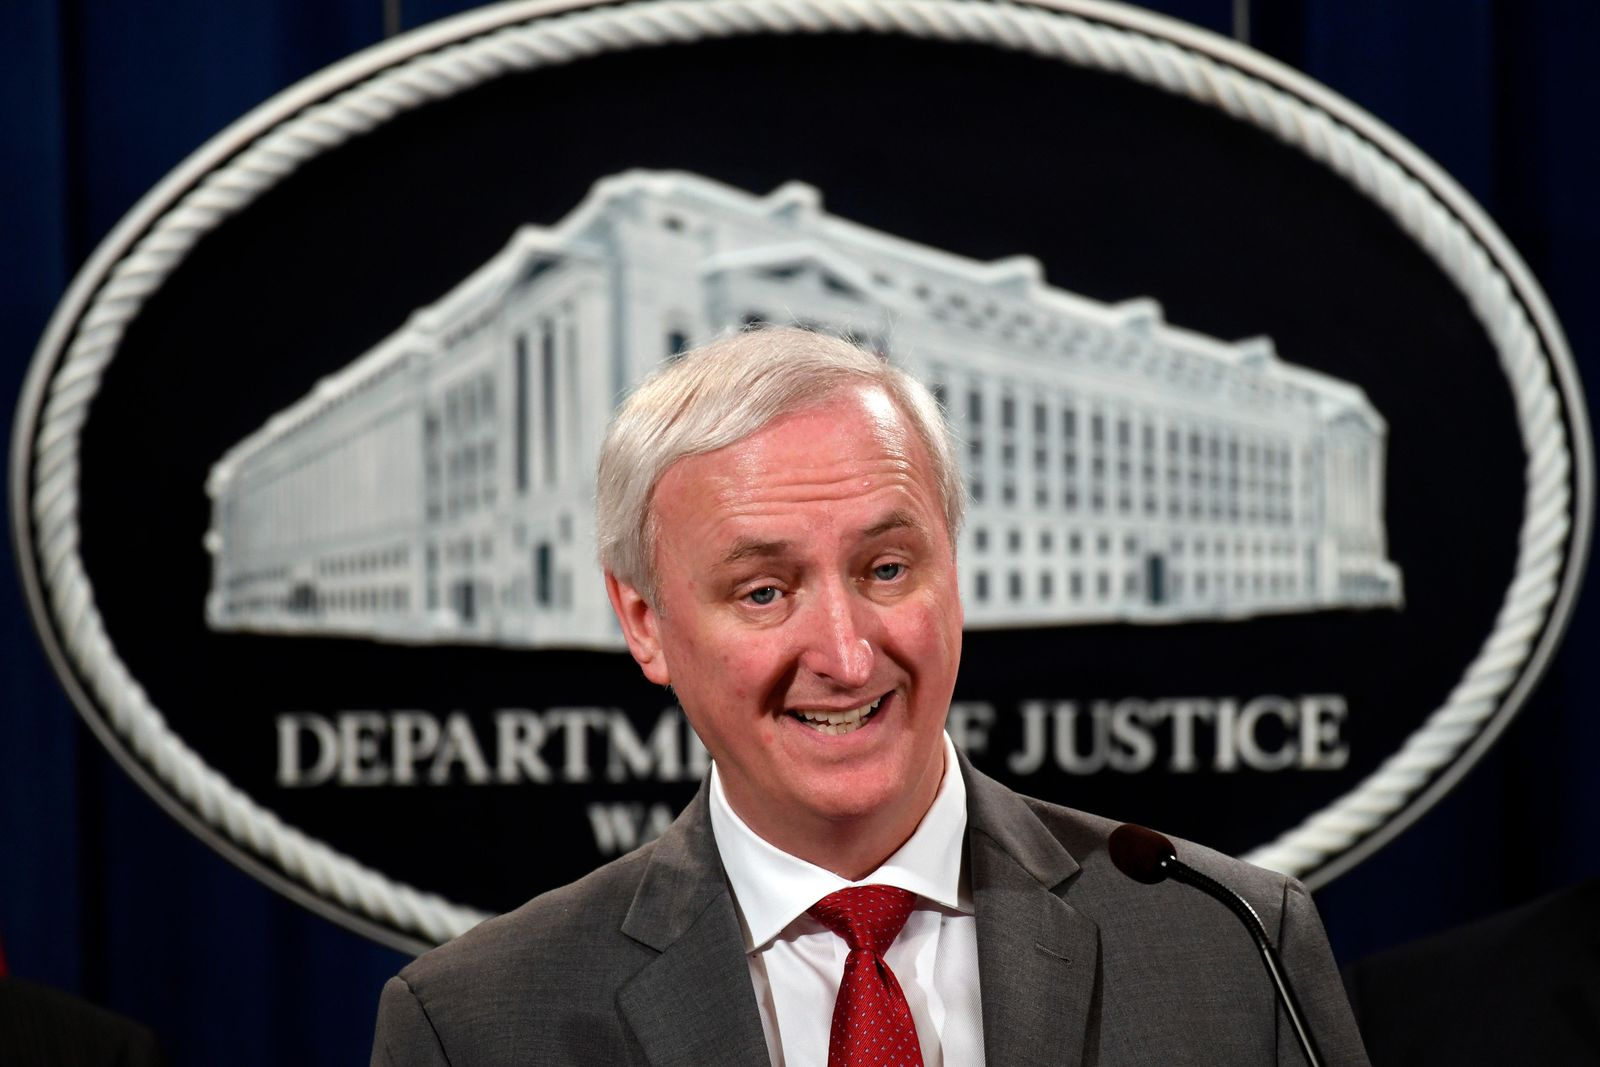 Deputy Attorney General Jeffrey Rosen speaks during a news conference at the Justice Department in Washington, Friday, July 19, 2019, on developments in the implementation of the First Step Act. About 2,200 federal inmates will be released by the federal Bureau of Prisons under the criminal justice reform measure signed into law last year by President Donald Trump. (AP Photo/Susan Walsh)